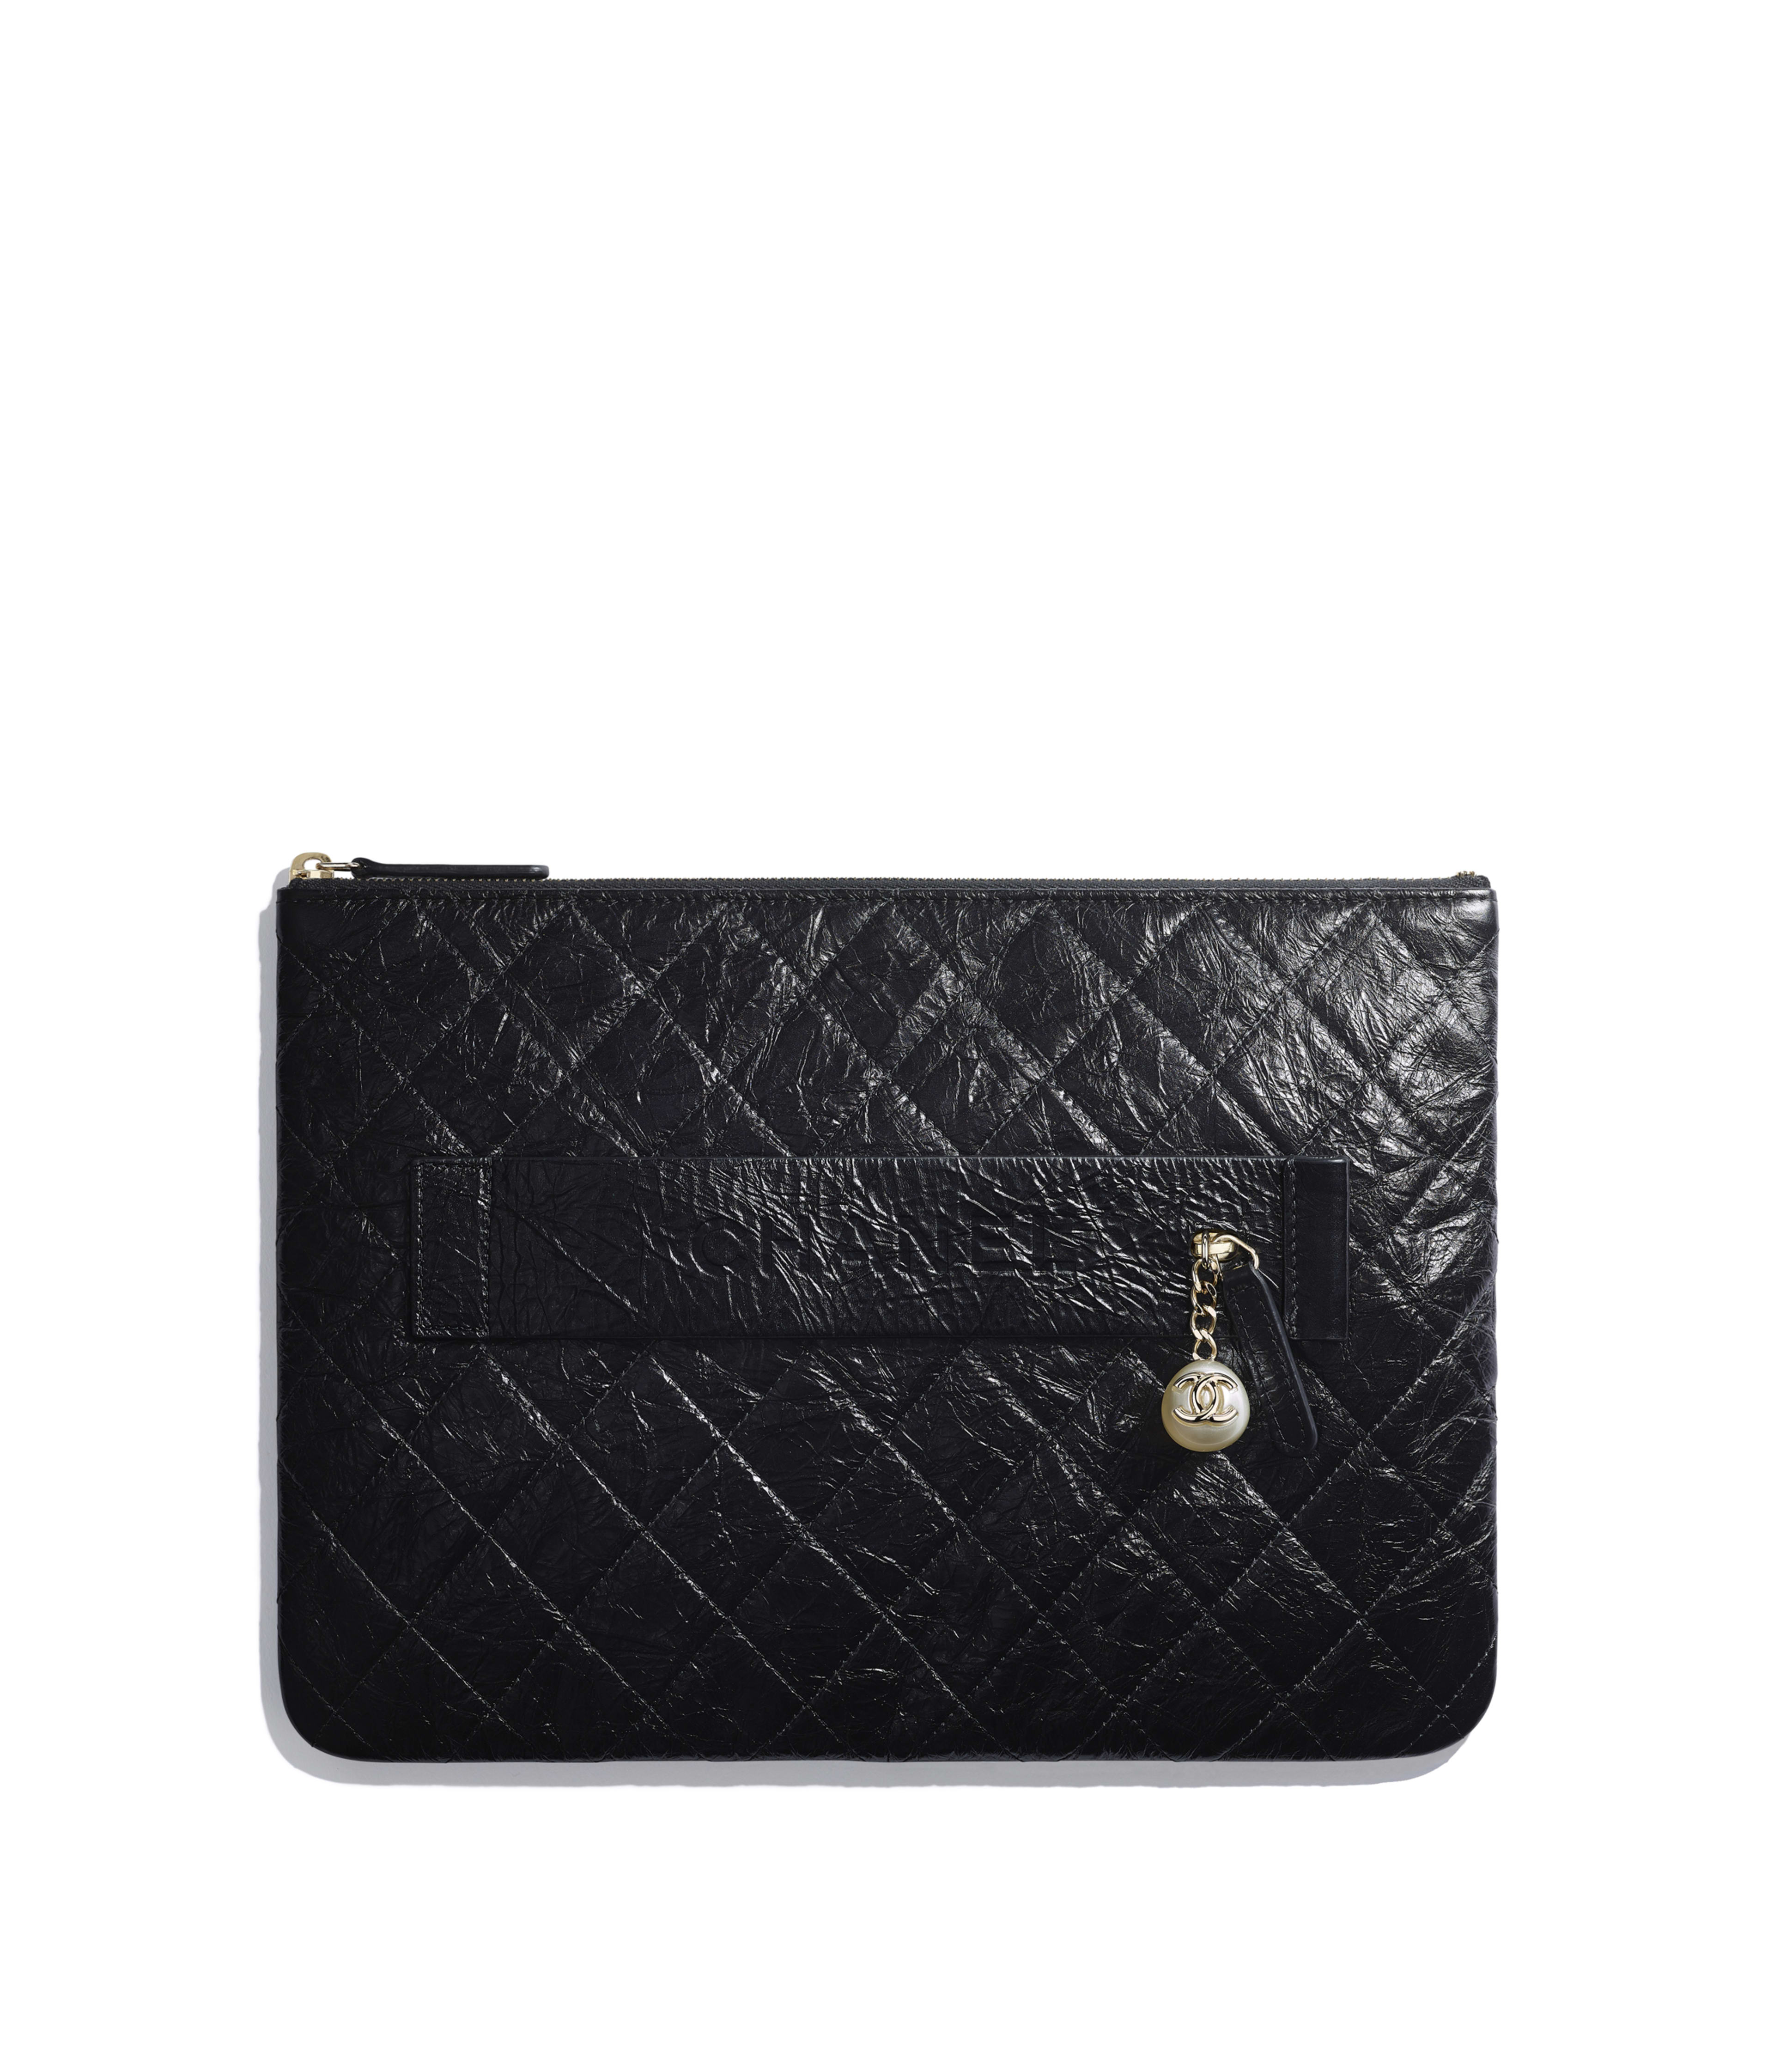 e84b44bfaeec4f Pouches Small Leather Goods Chanel. Chanel Makeup Bag Cosmetics Porch Lady  S Black Caviar Skin